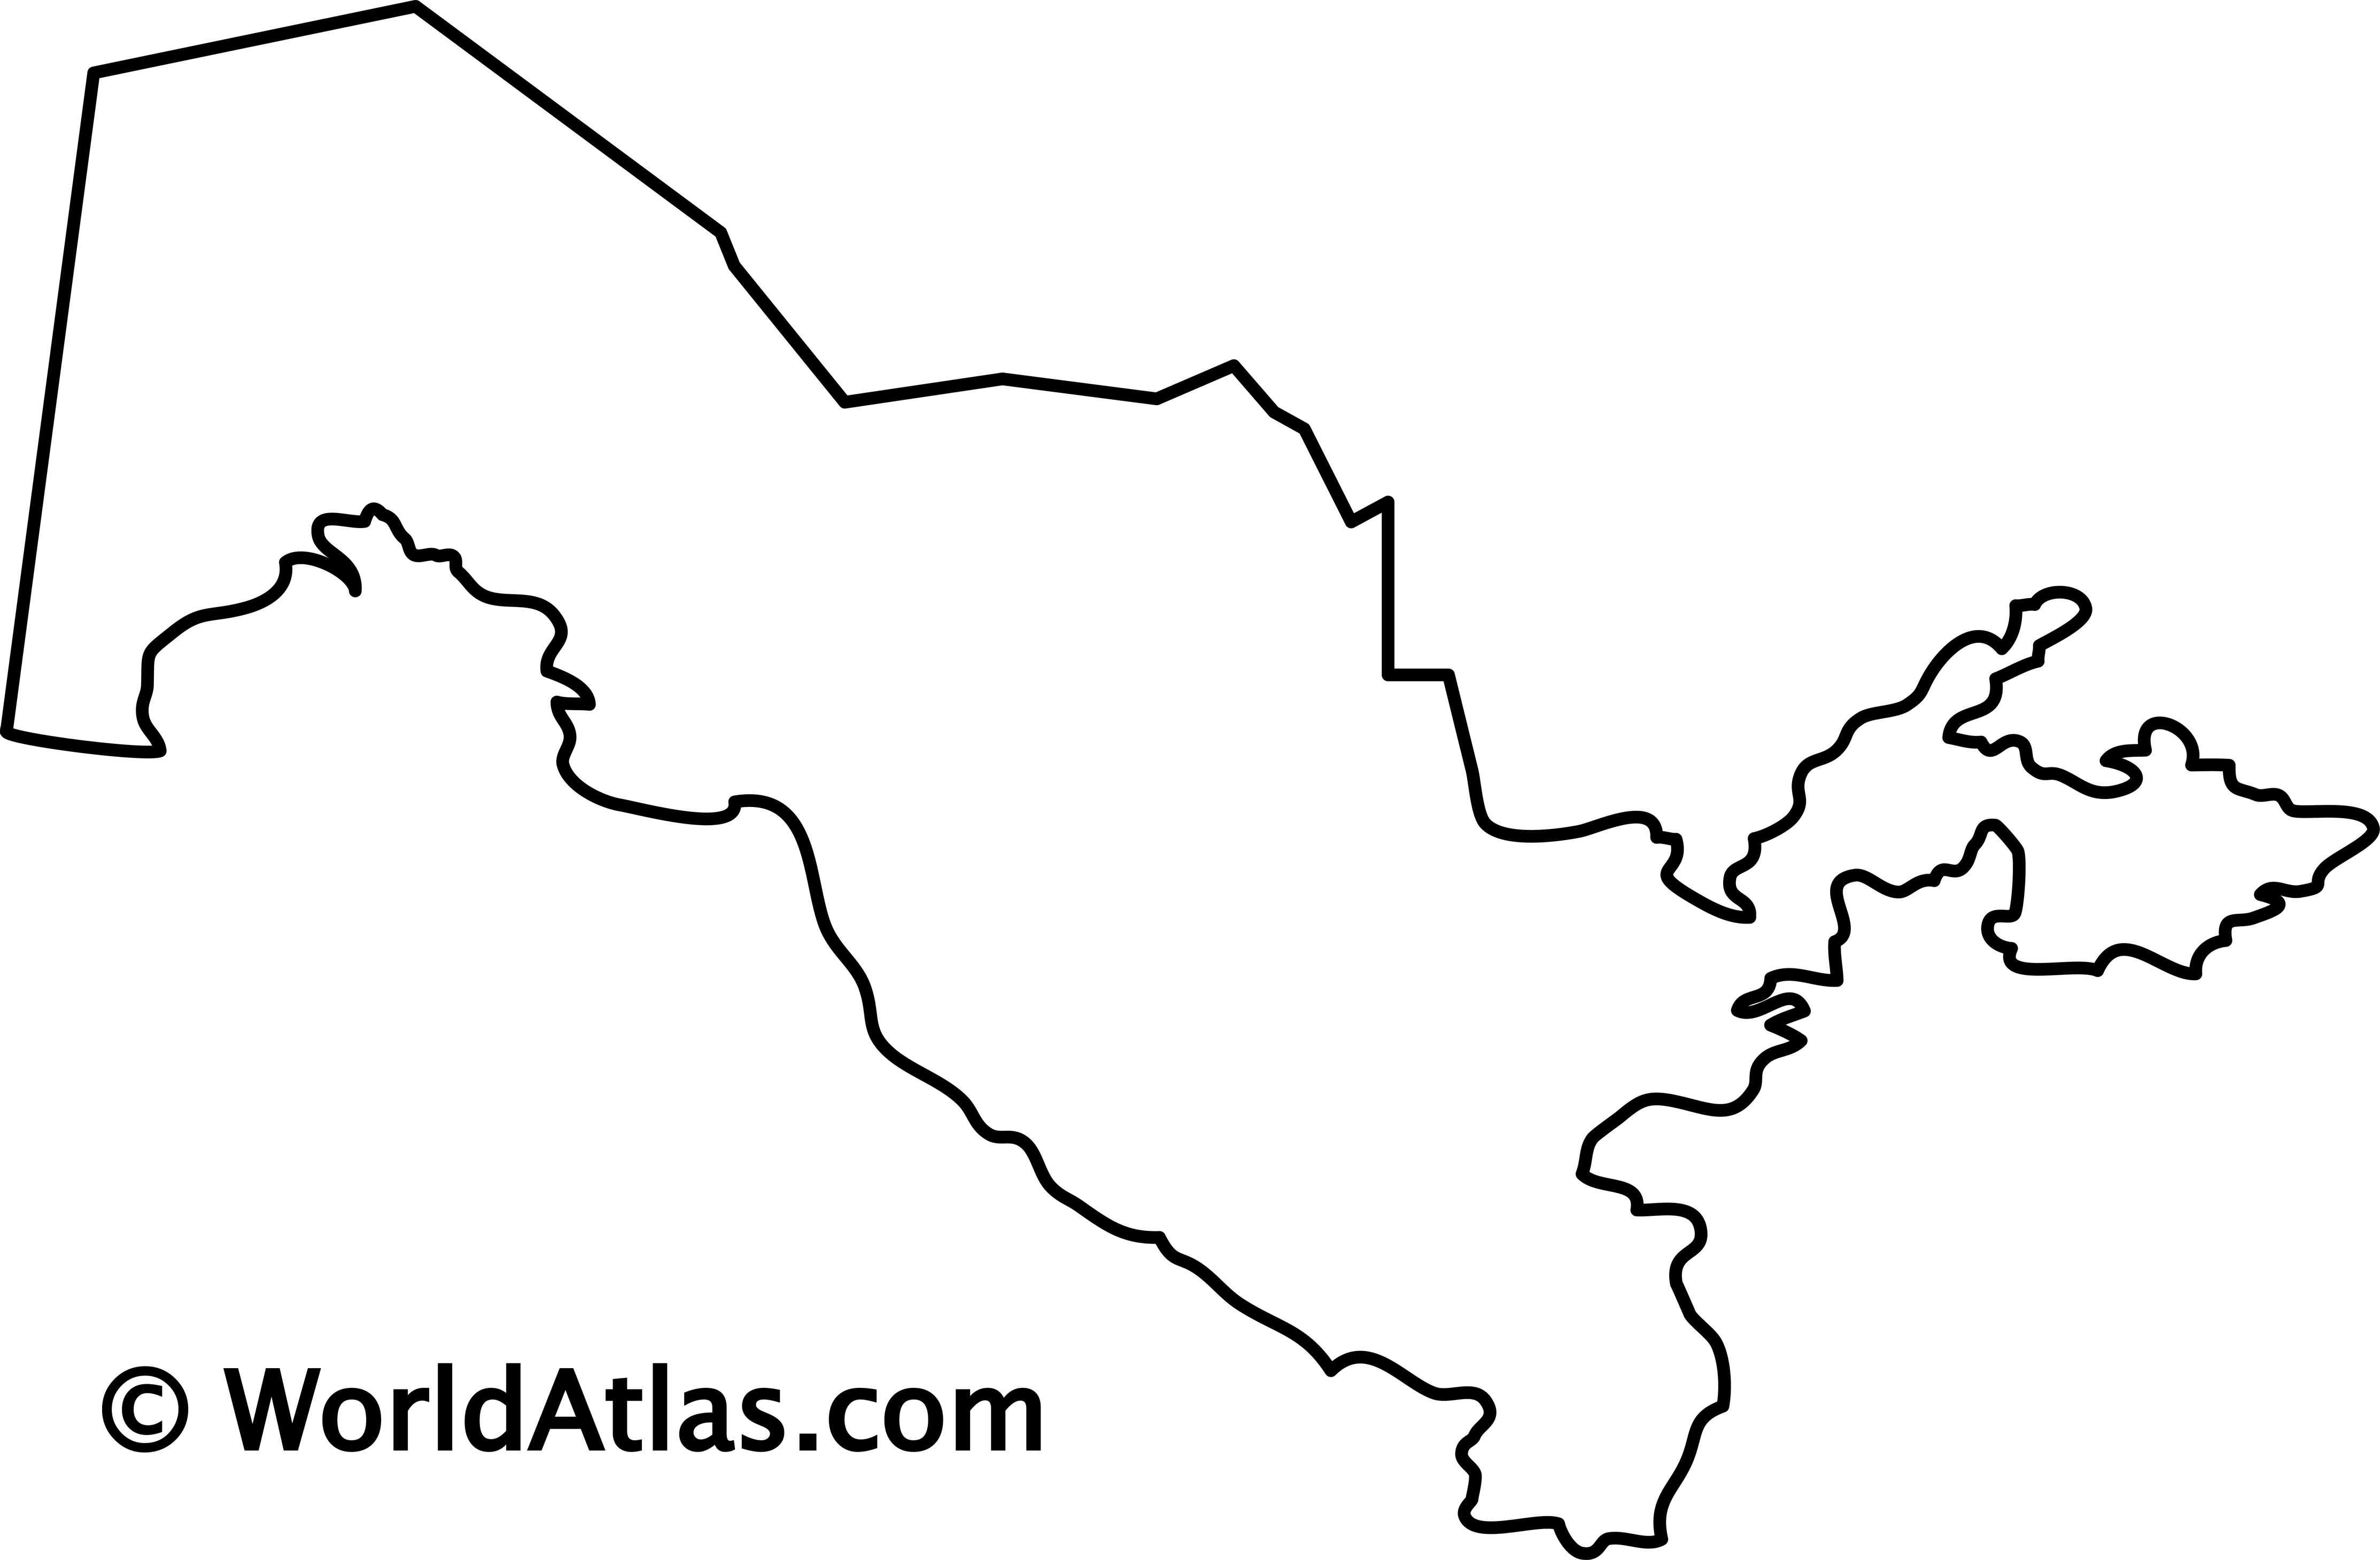 Blank Outline Map of Uzbekistan